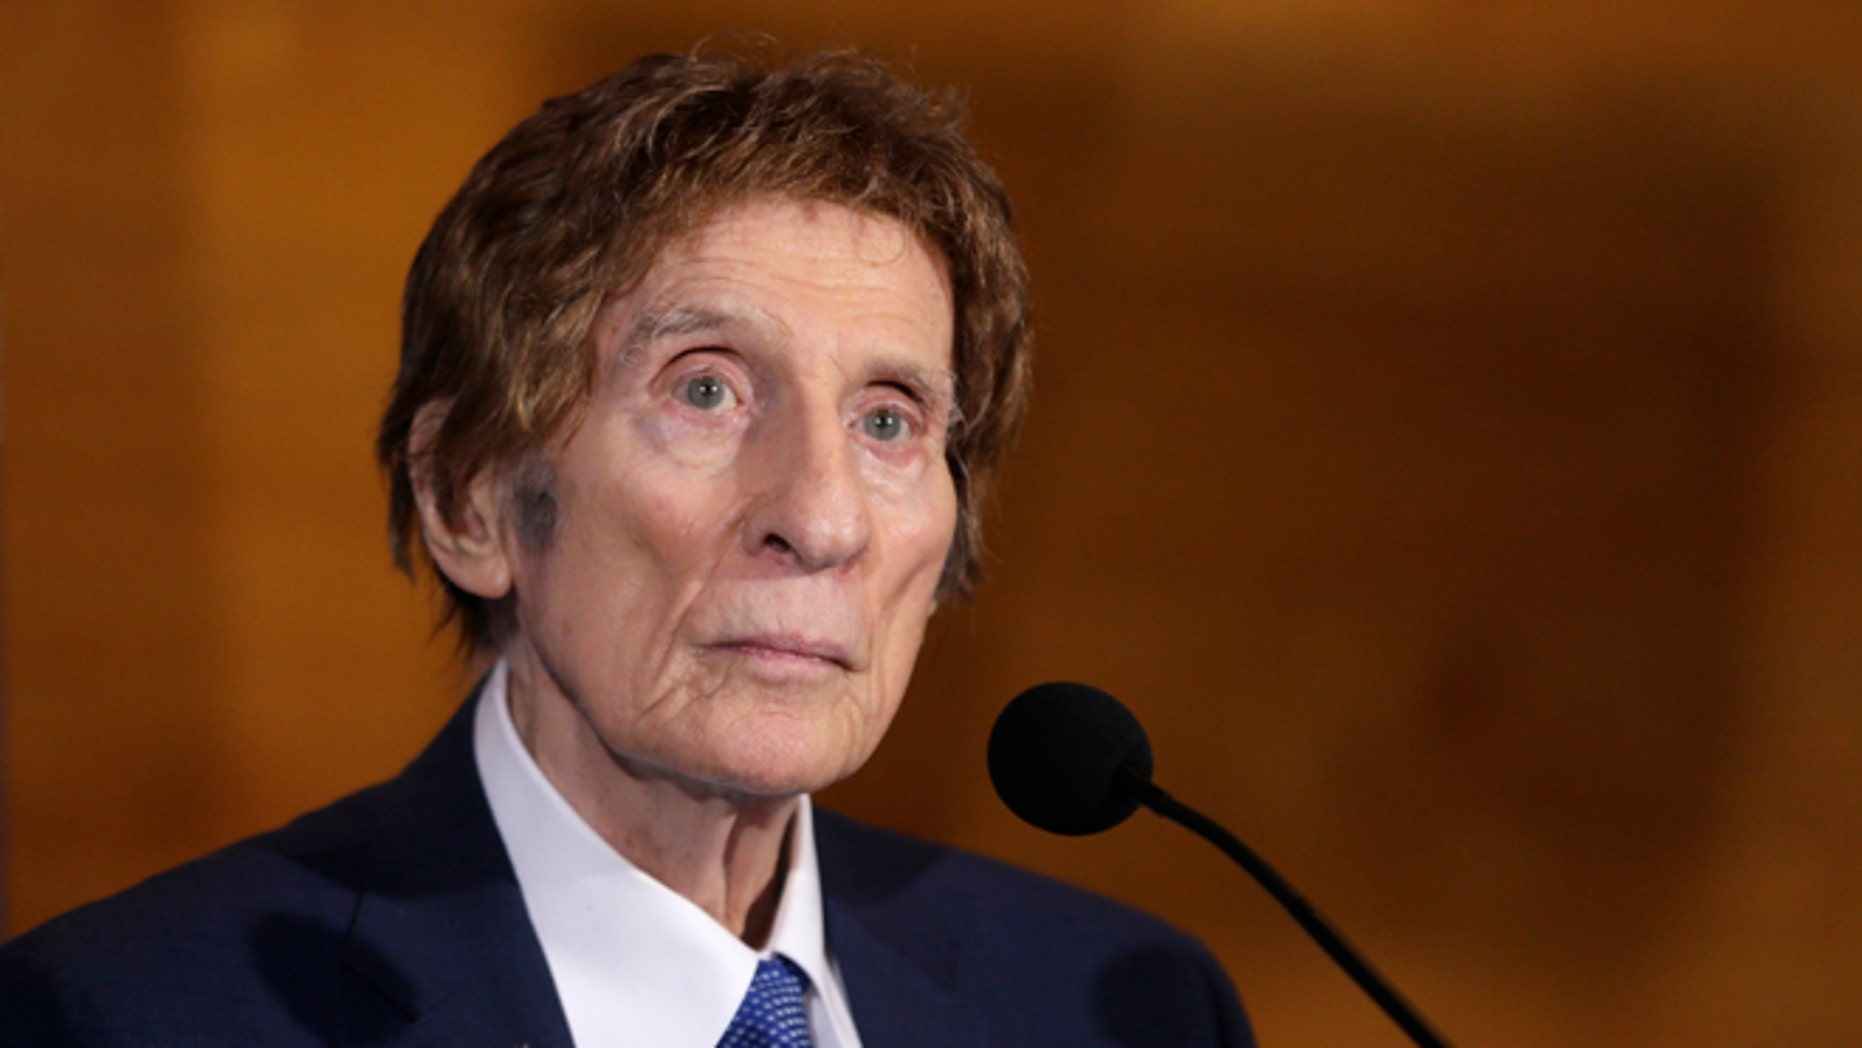 FILE- In a file photo from Nov. 14, 2014, Detroit Tigers owner Mike Ilitch listens during a news conference in Detroit. Ilitch, the owner of the Detroit Red Wings and Tigers, who founded the Little Caesars Pizza empire, has died.